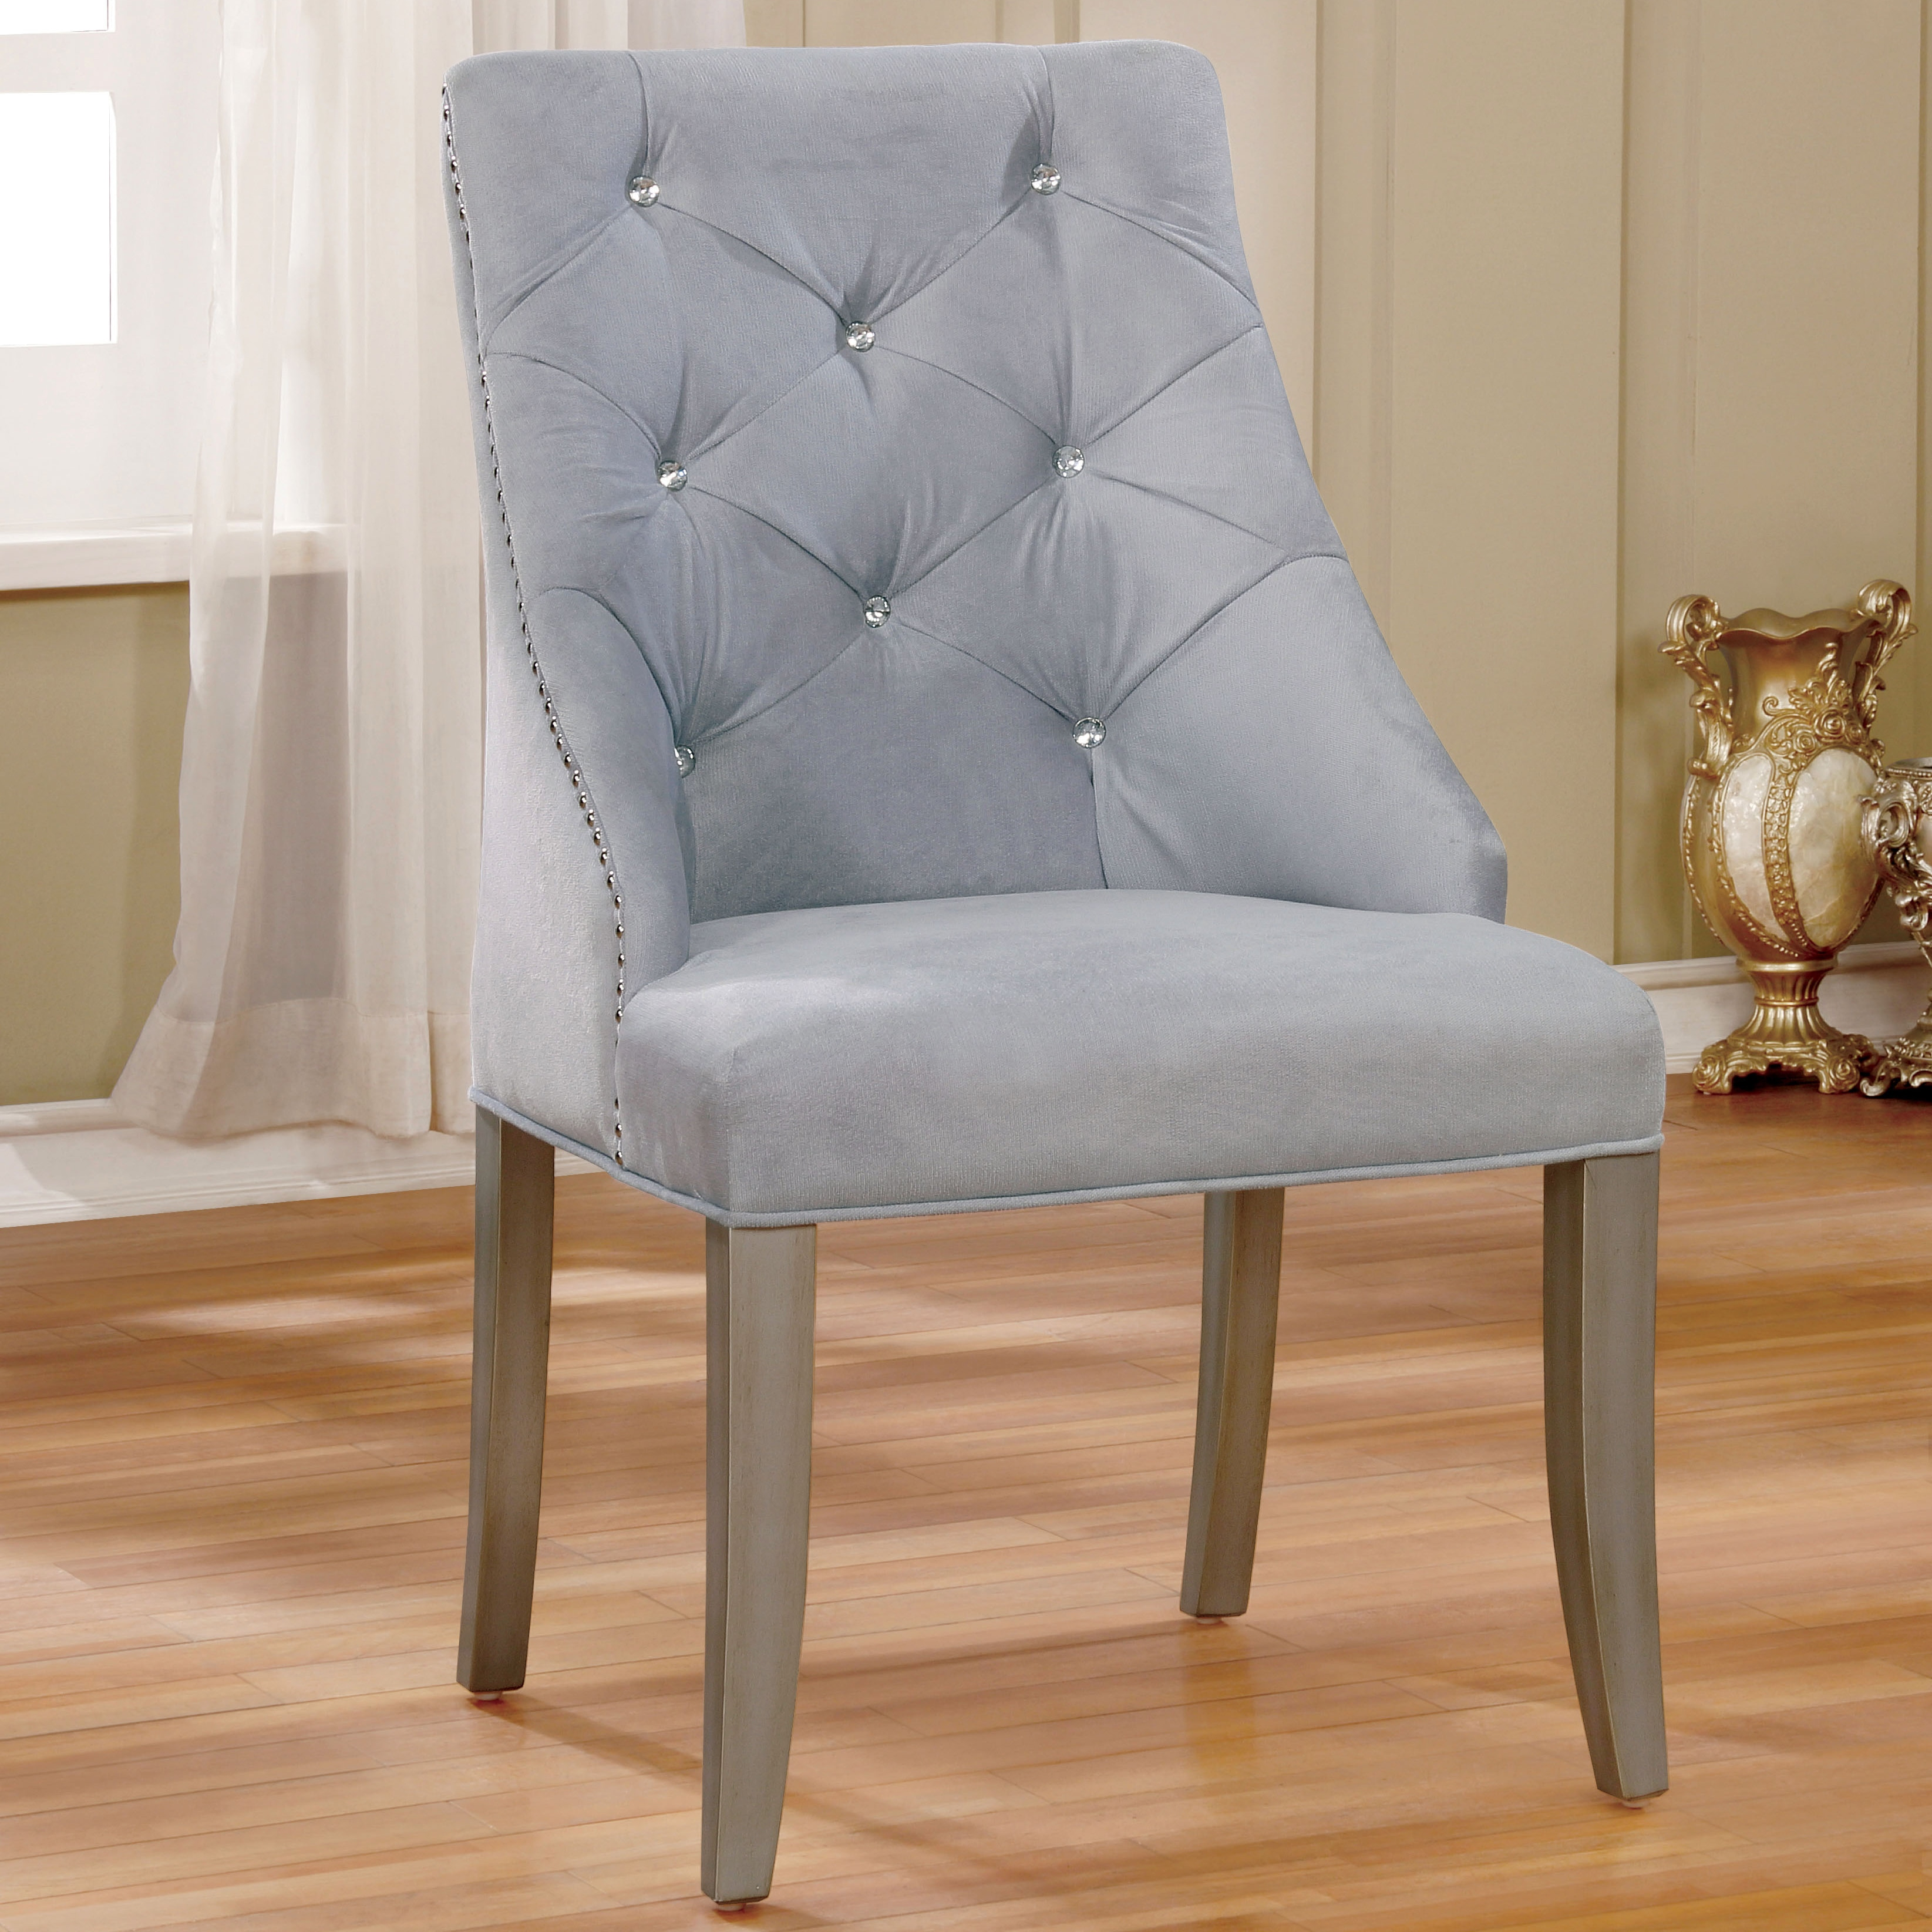 Furniture of America Selano Contemporary Tufted Flannelet...